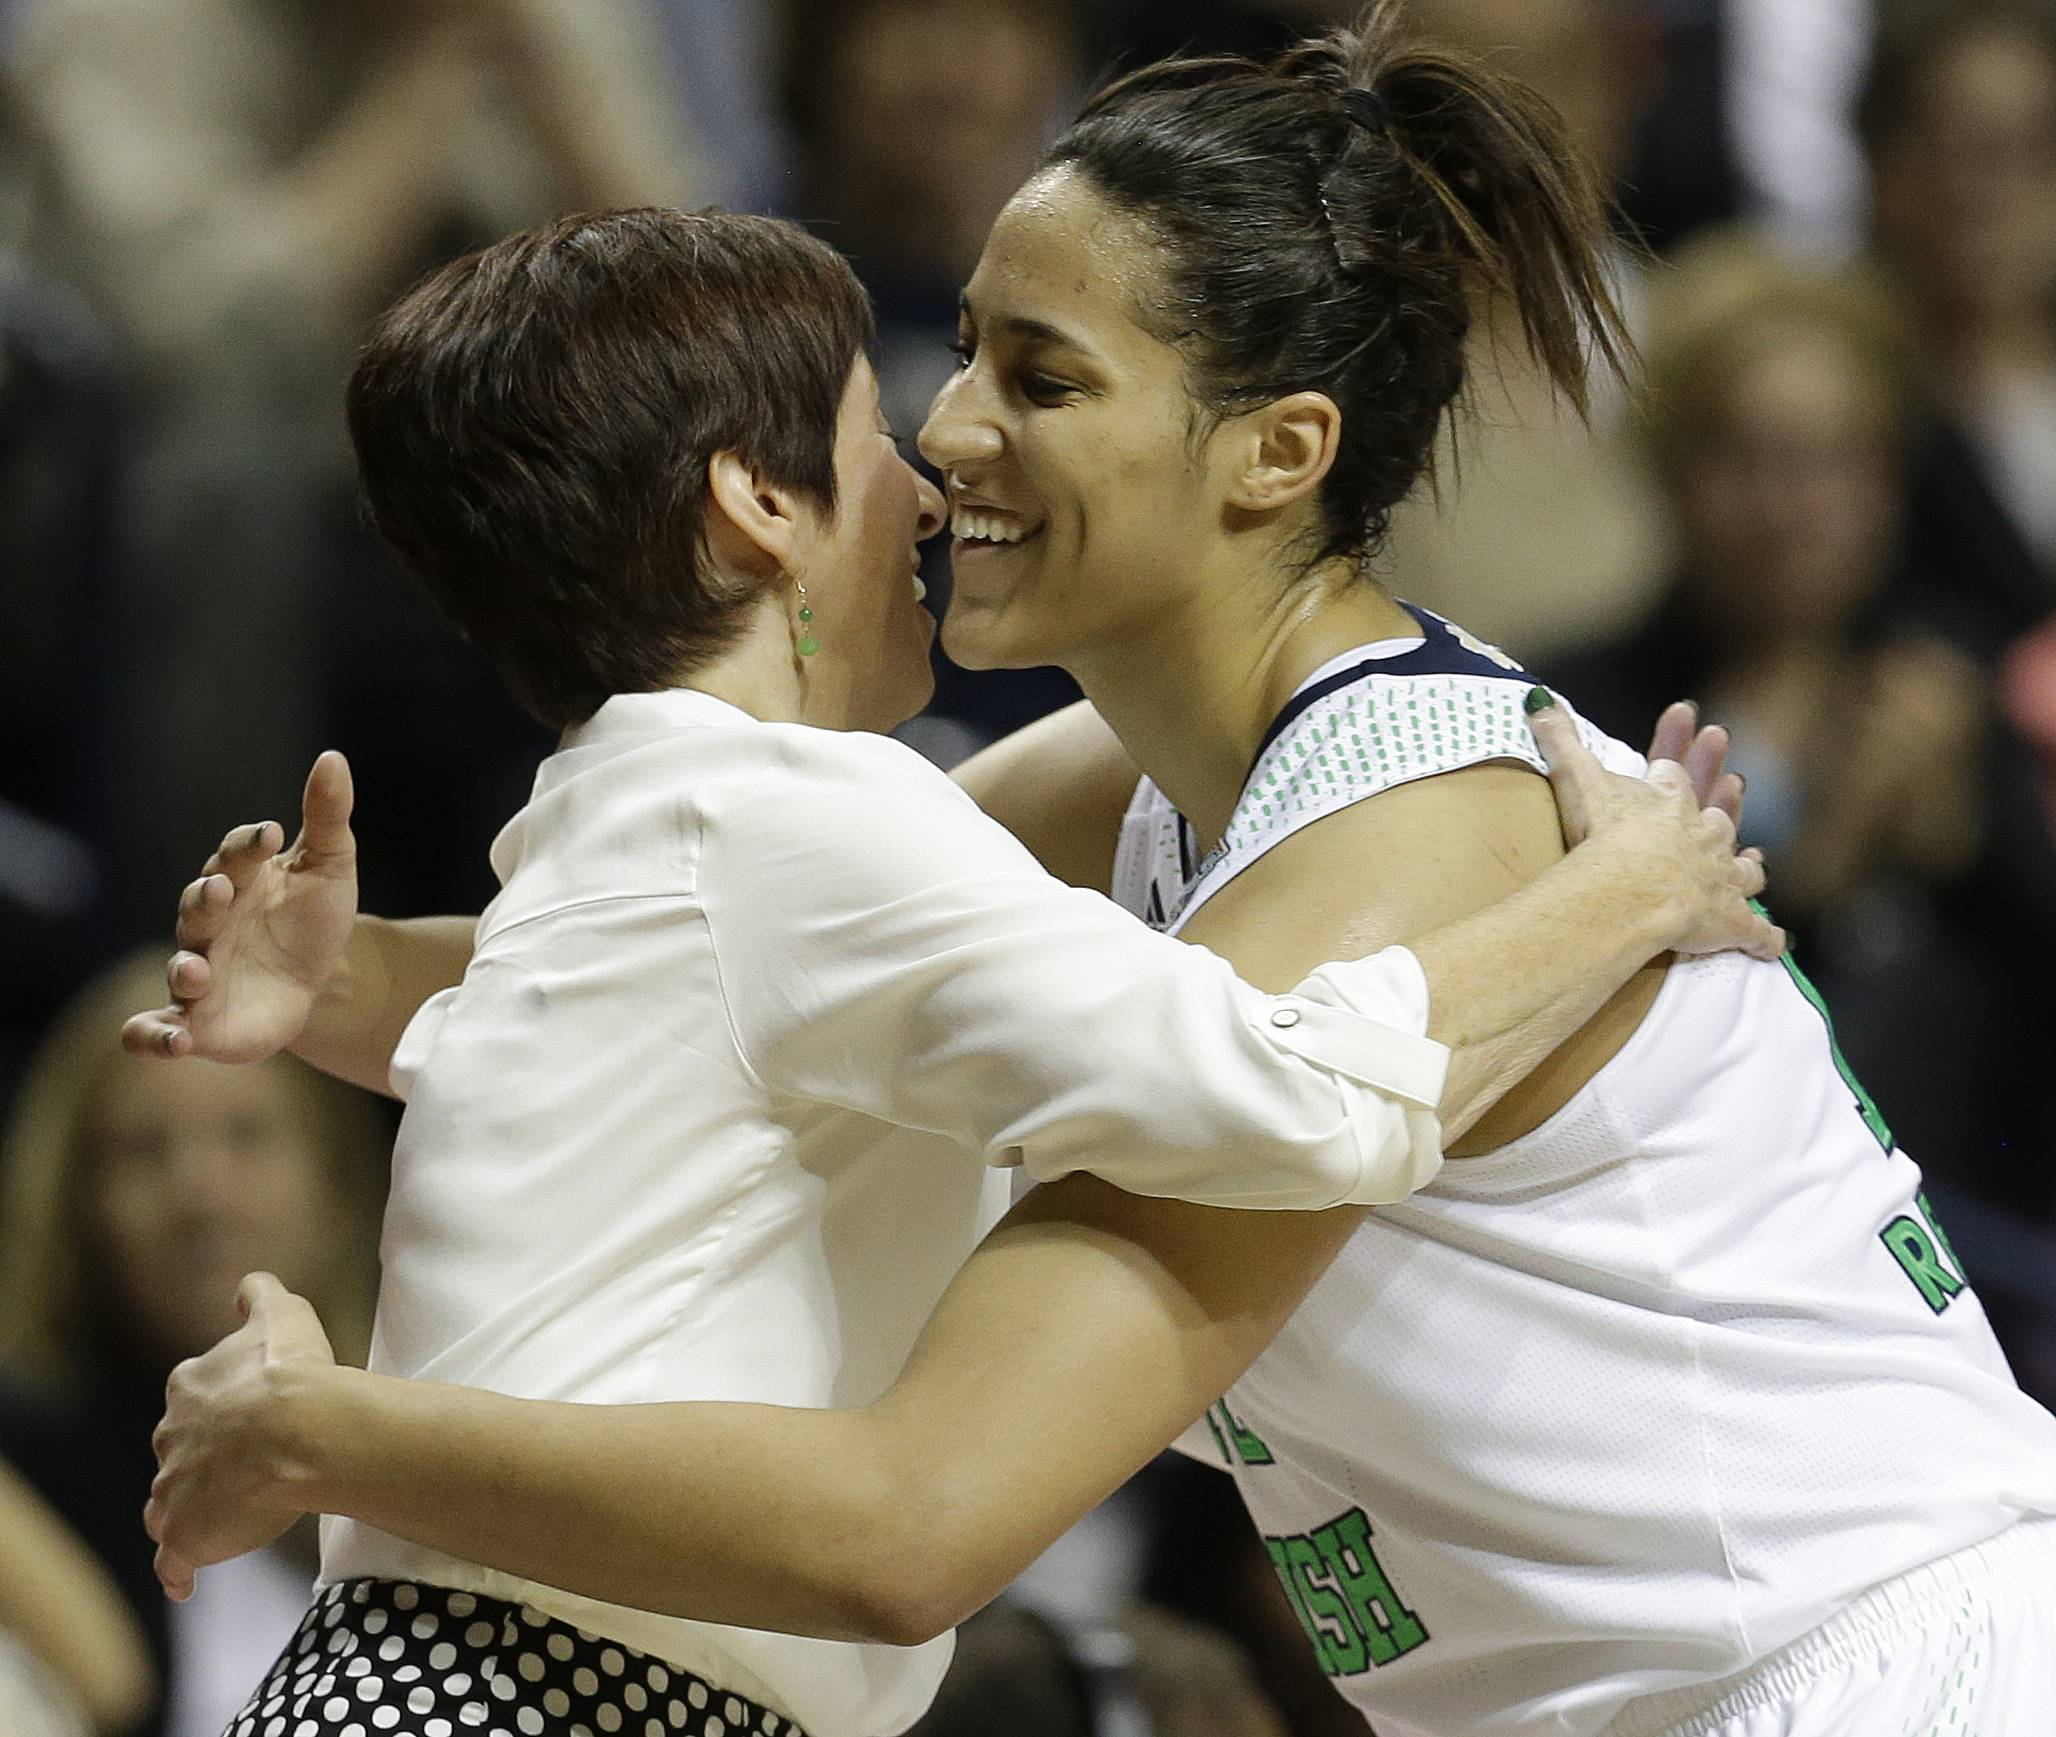 Notre Dame forward Taya Reimer embraces Notre Dame head coach Muffet McGraw during the second half of the semifinal game against Maryland in the Final Four of the NCAA women's college basketball tournament, Sunday, April 6, 2014, in Nashville, Tenn. Notre Dame won 87-61.